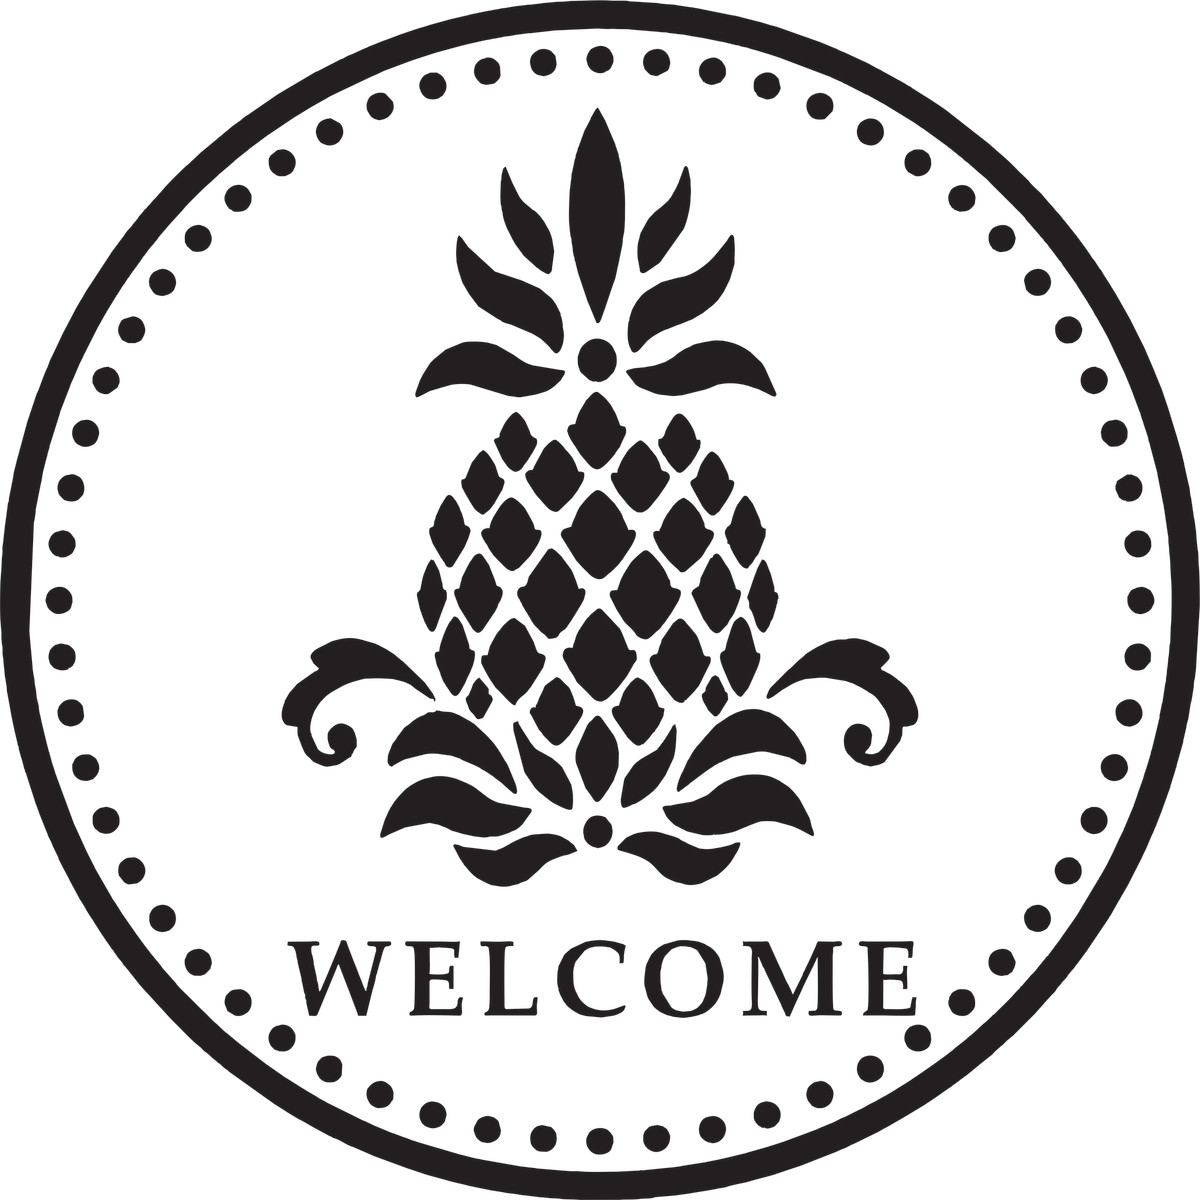 An example of the pineapple welcome sign.